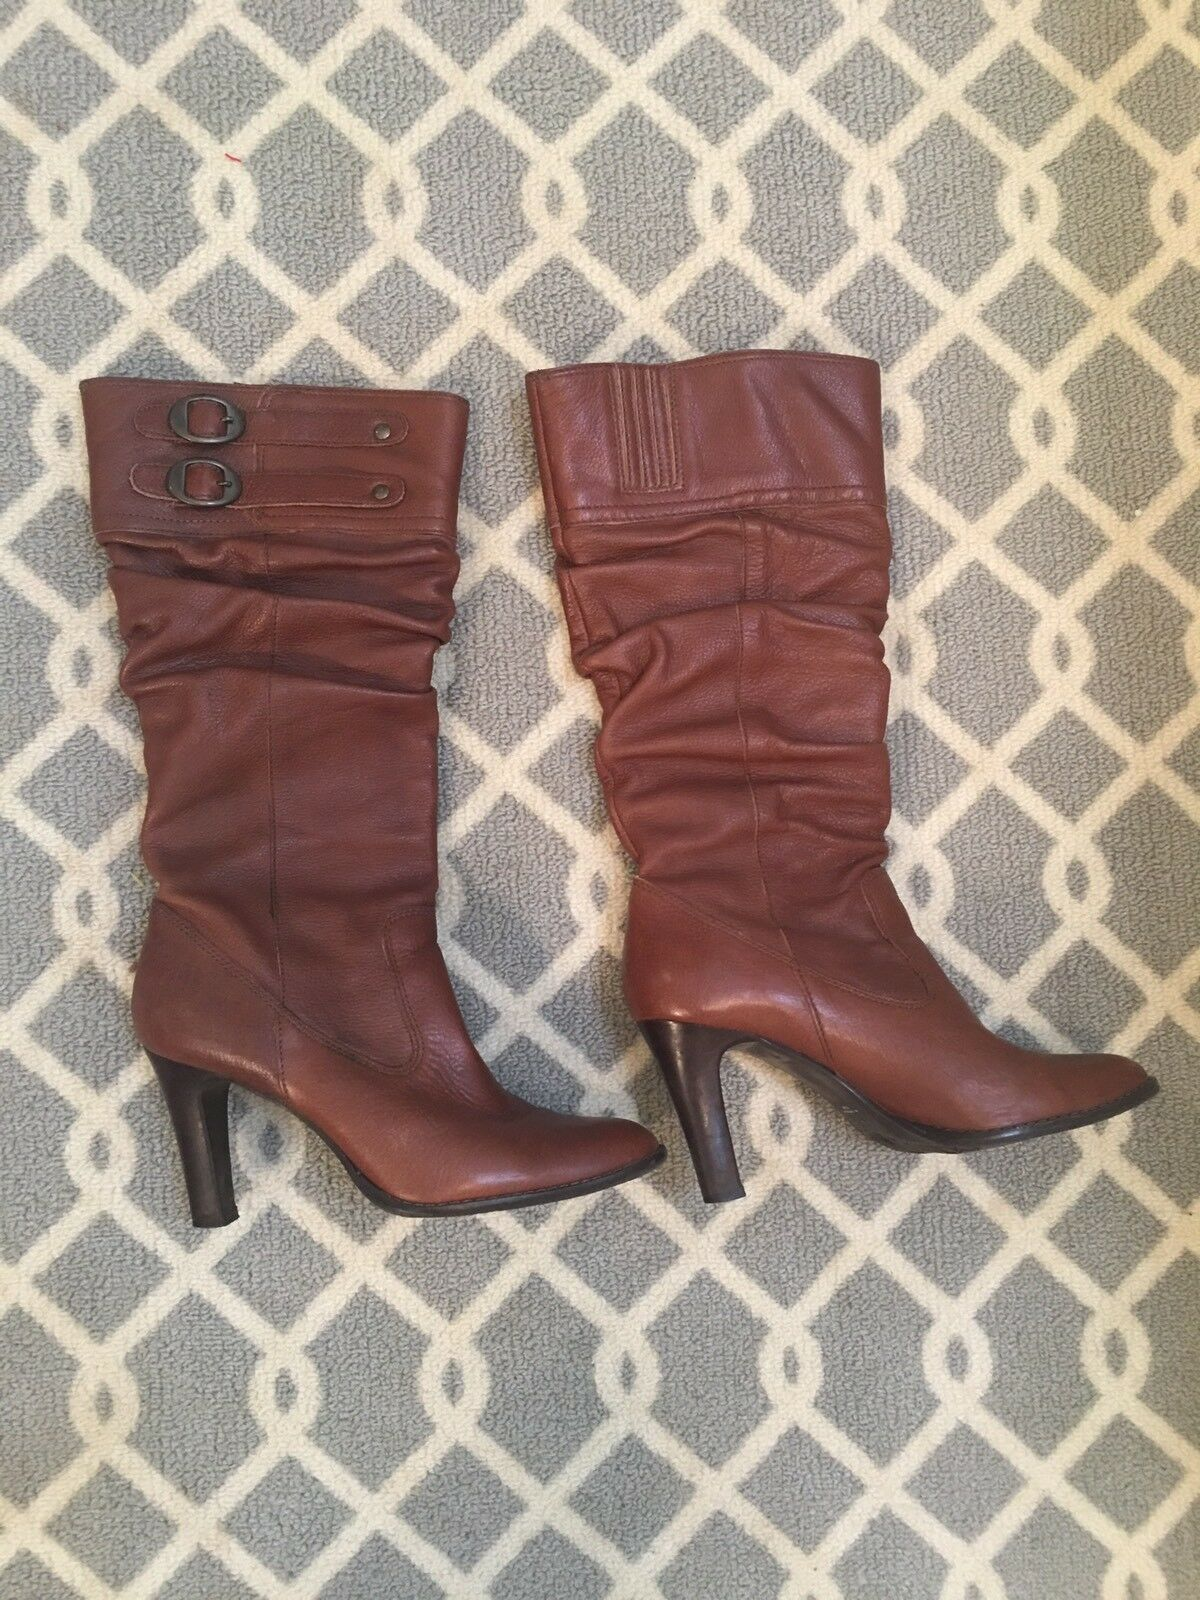 Matisse Women's US 8.5 M Brown Leather Pull On Slouchy  Knee-High Casual Boots